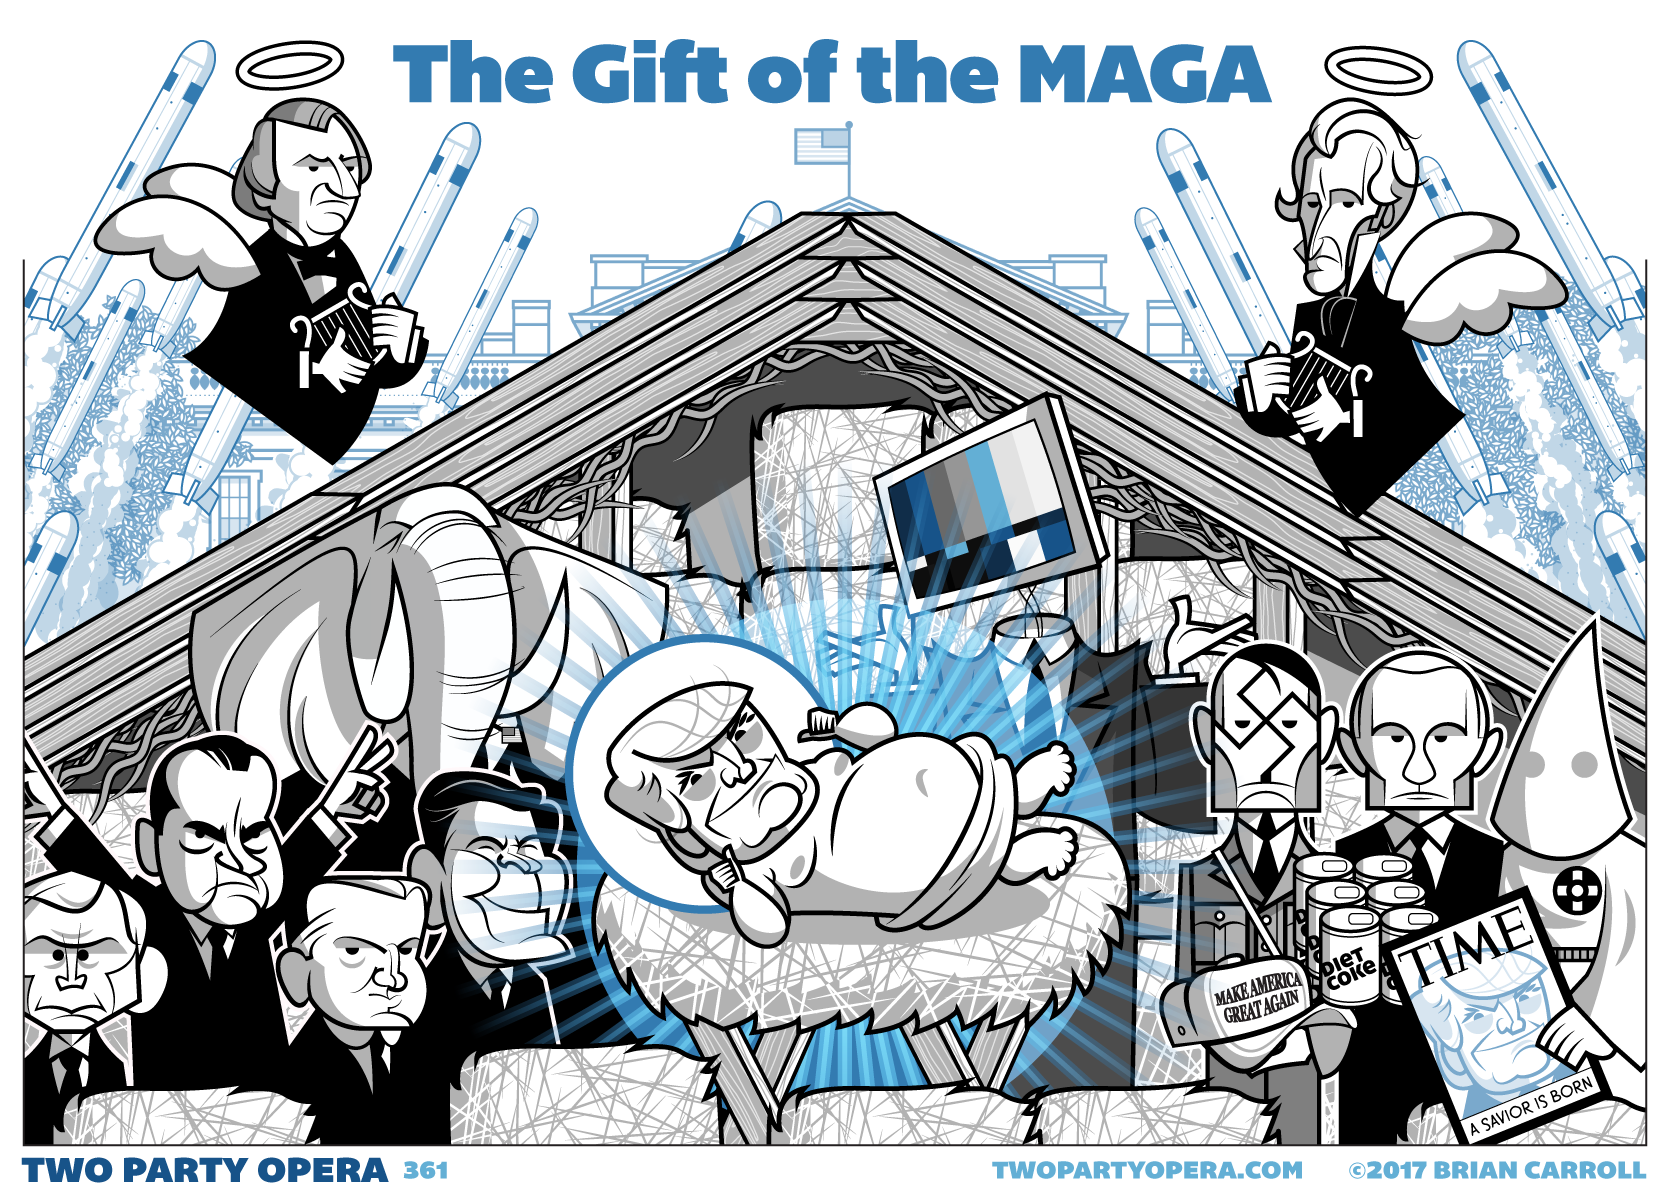 The Gift of the MAGA